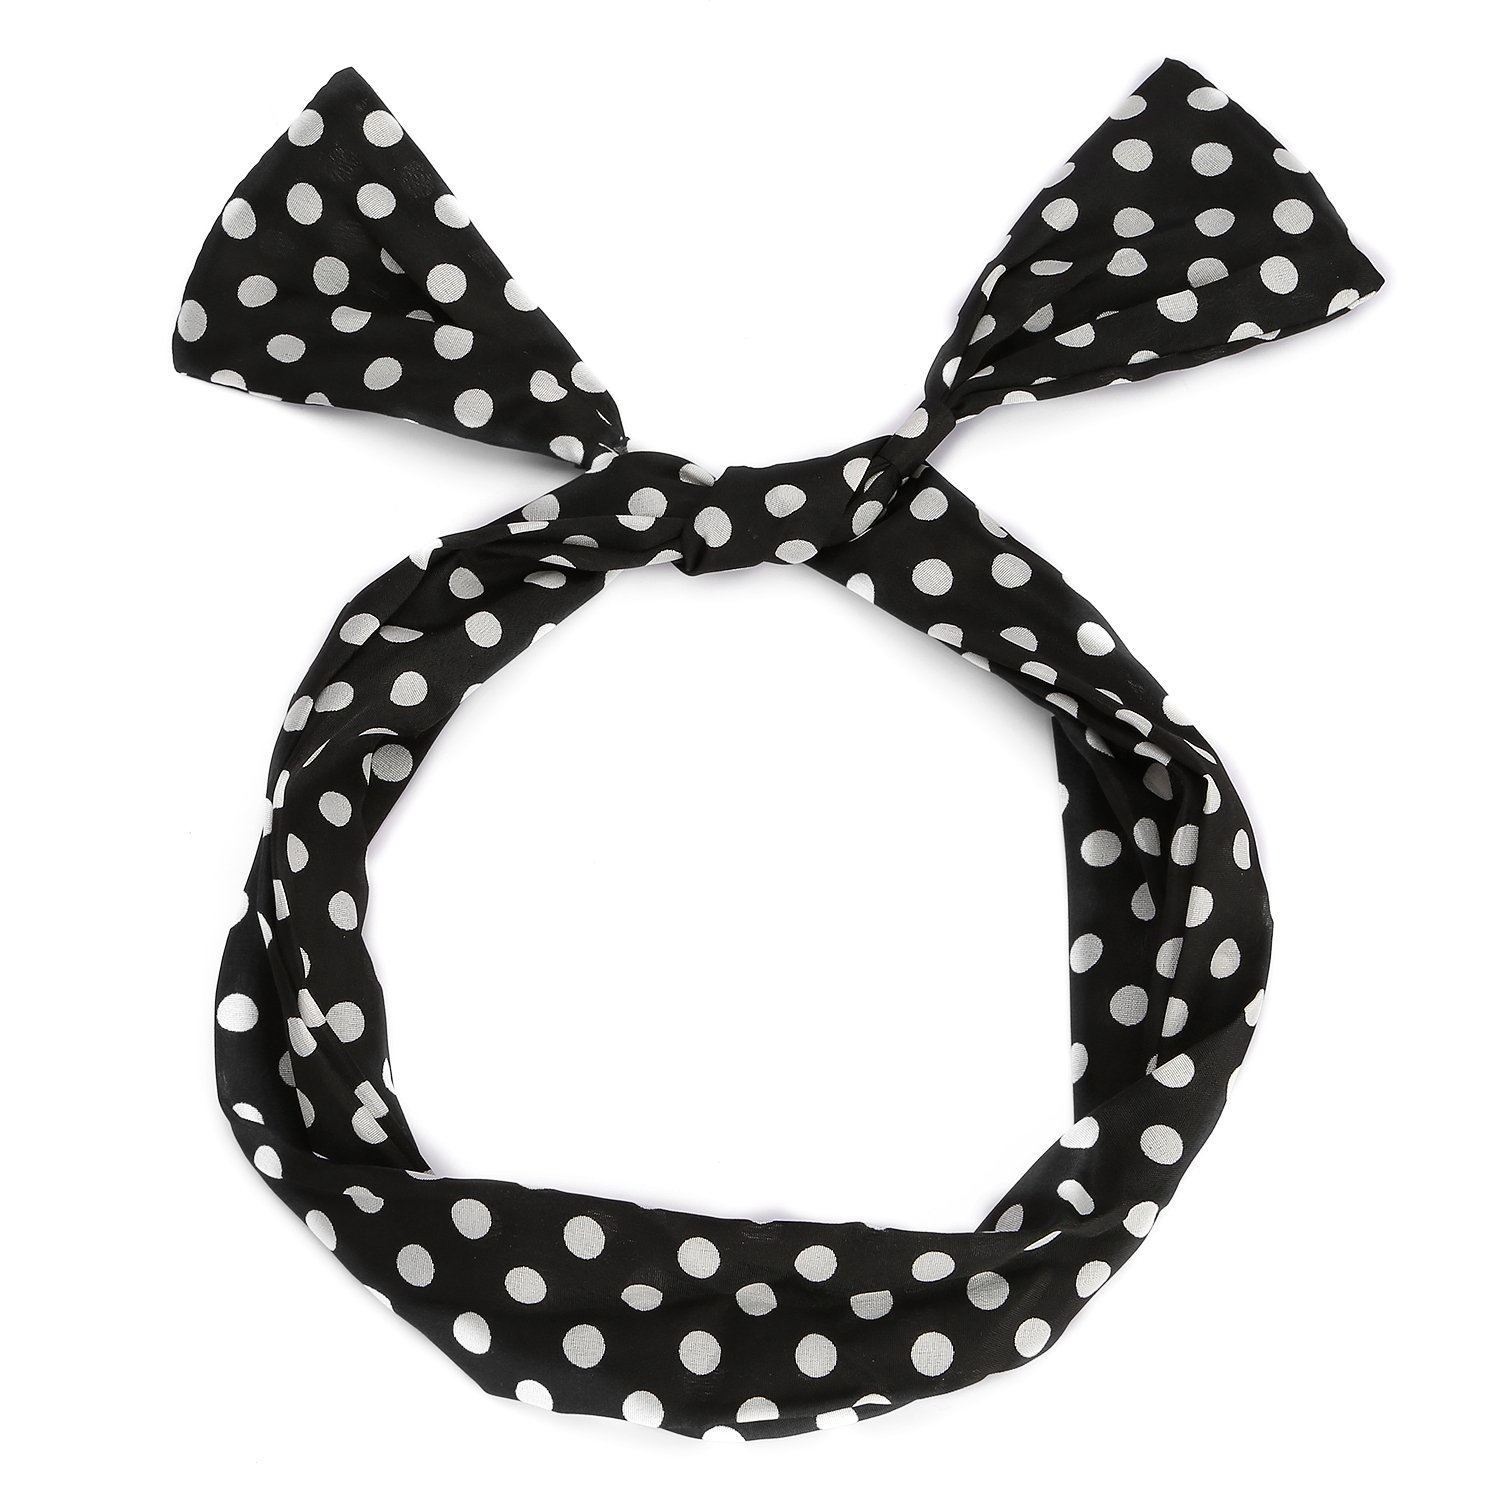 UTOVME Fashion Polka Dots Bowknot Headbands Wired Wrap Elastic Hair Clasp, Black